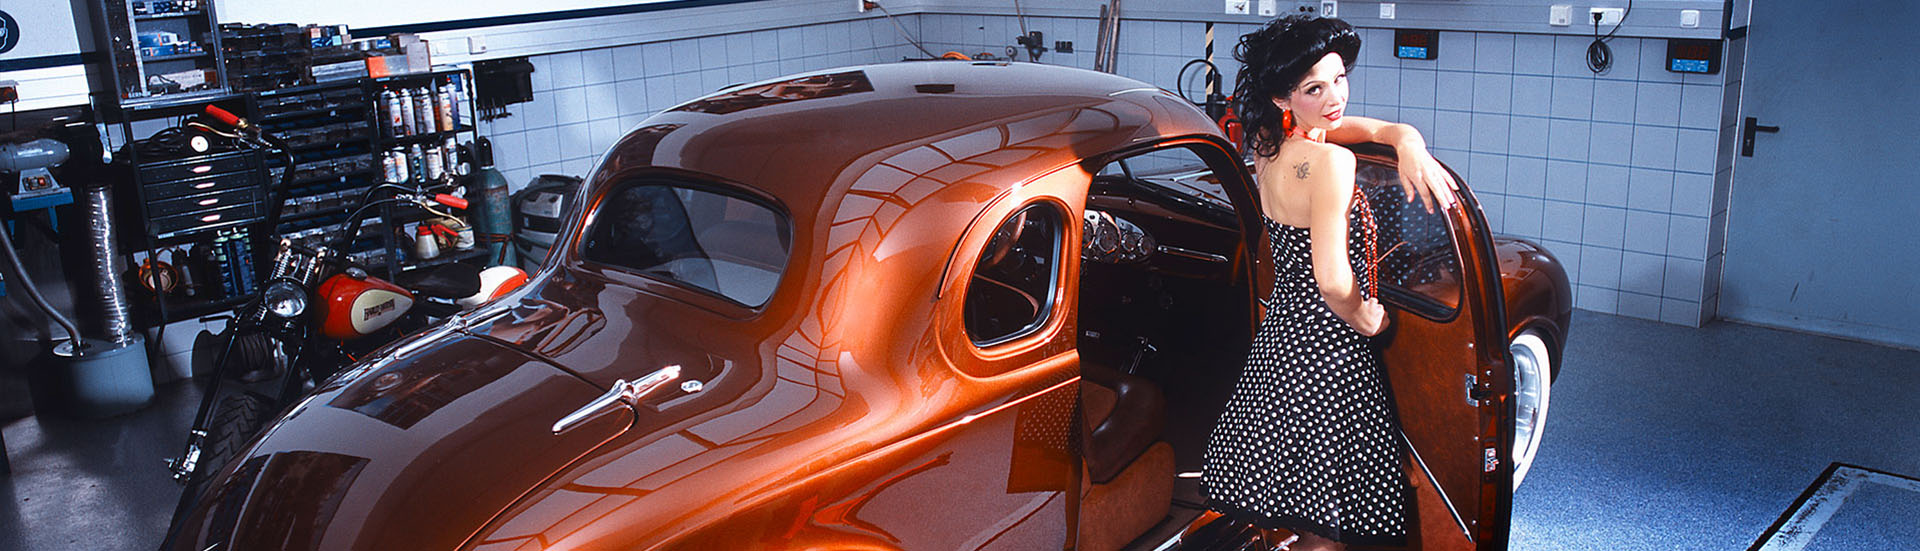 Oldtimer-Restauration Österreich, Plymouth P7 Coupé 1939